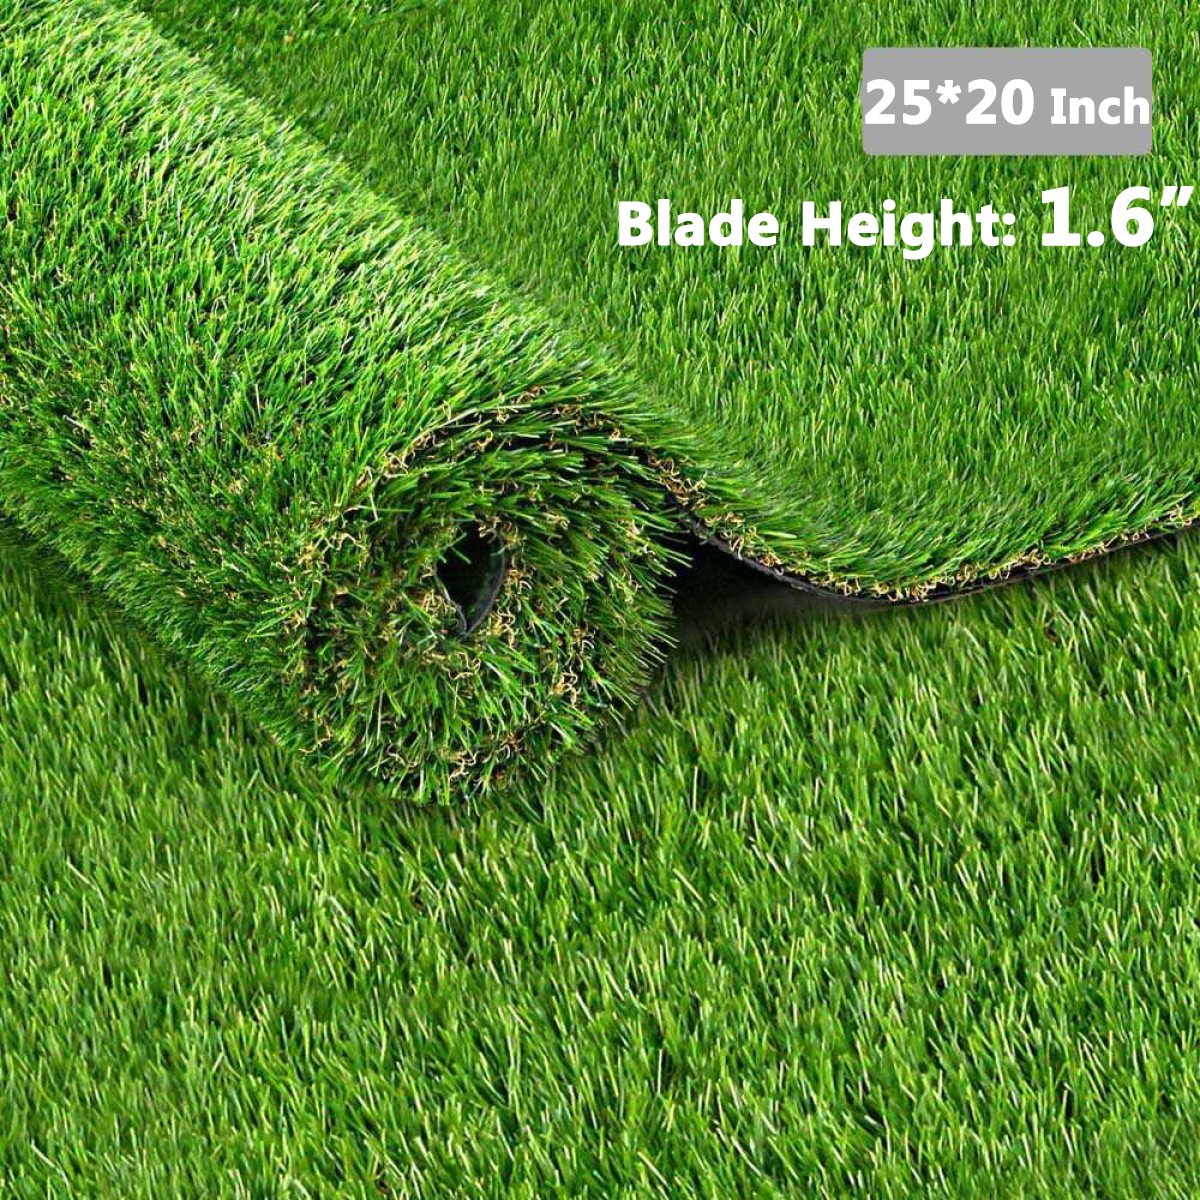 Highland Farms Select Non-toxic Artificial Grass/Pet Realistic & Soft Turf Synthetic Grass Mat for Pet Garden Training, Drainage Holes & Rubber Backing, 1.6-inch Blade Height, 2520 Inches